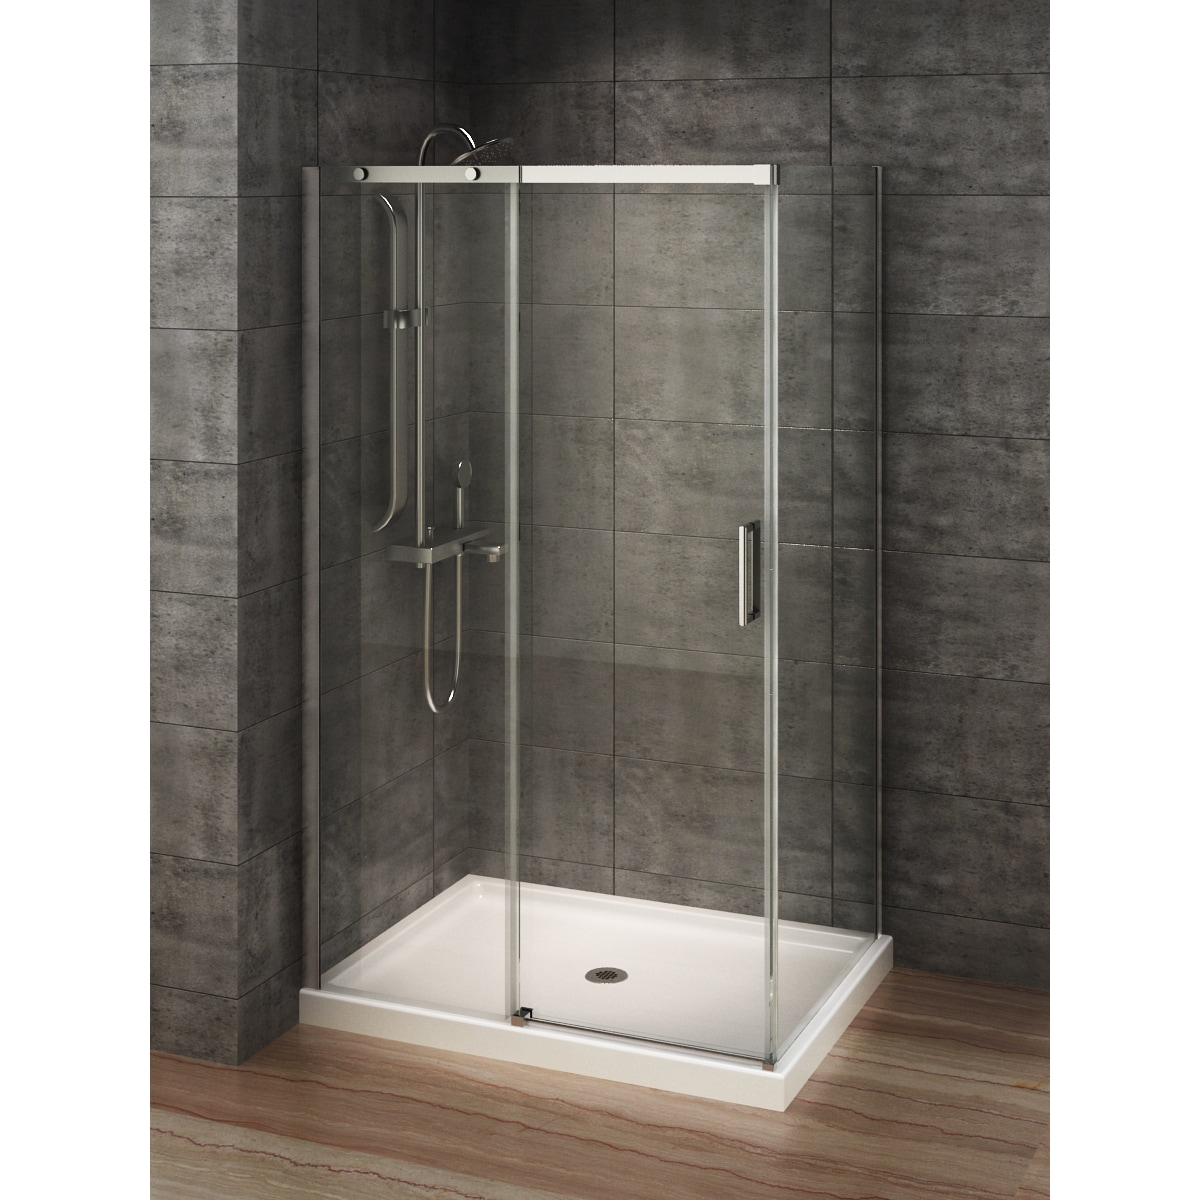 Berlin Glass 48-inch x 32-inch Rectangular Corner Shower ...